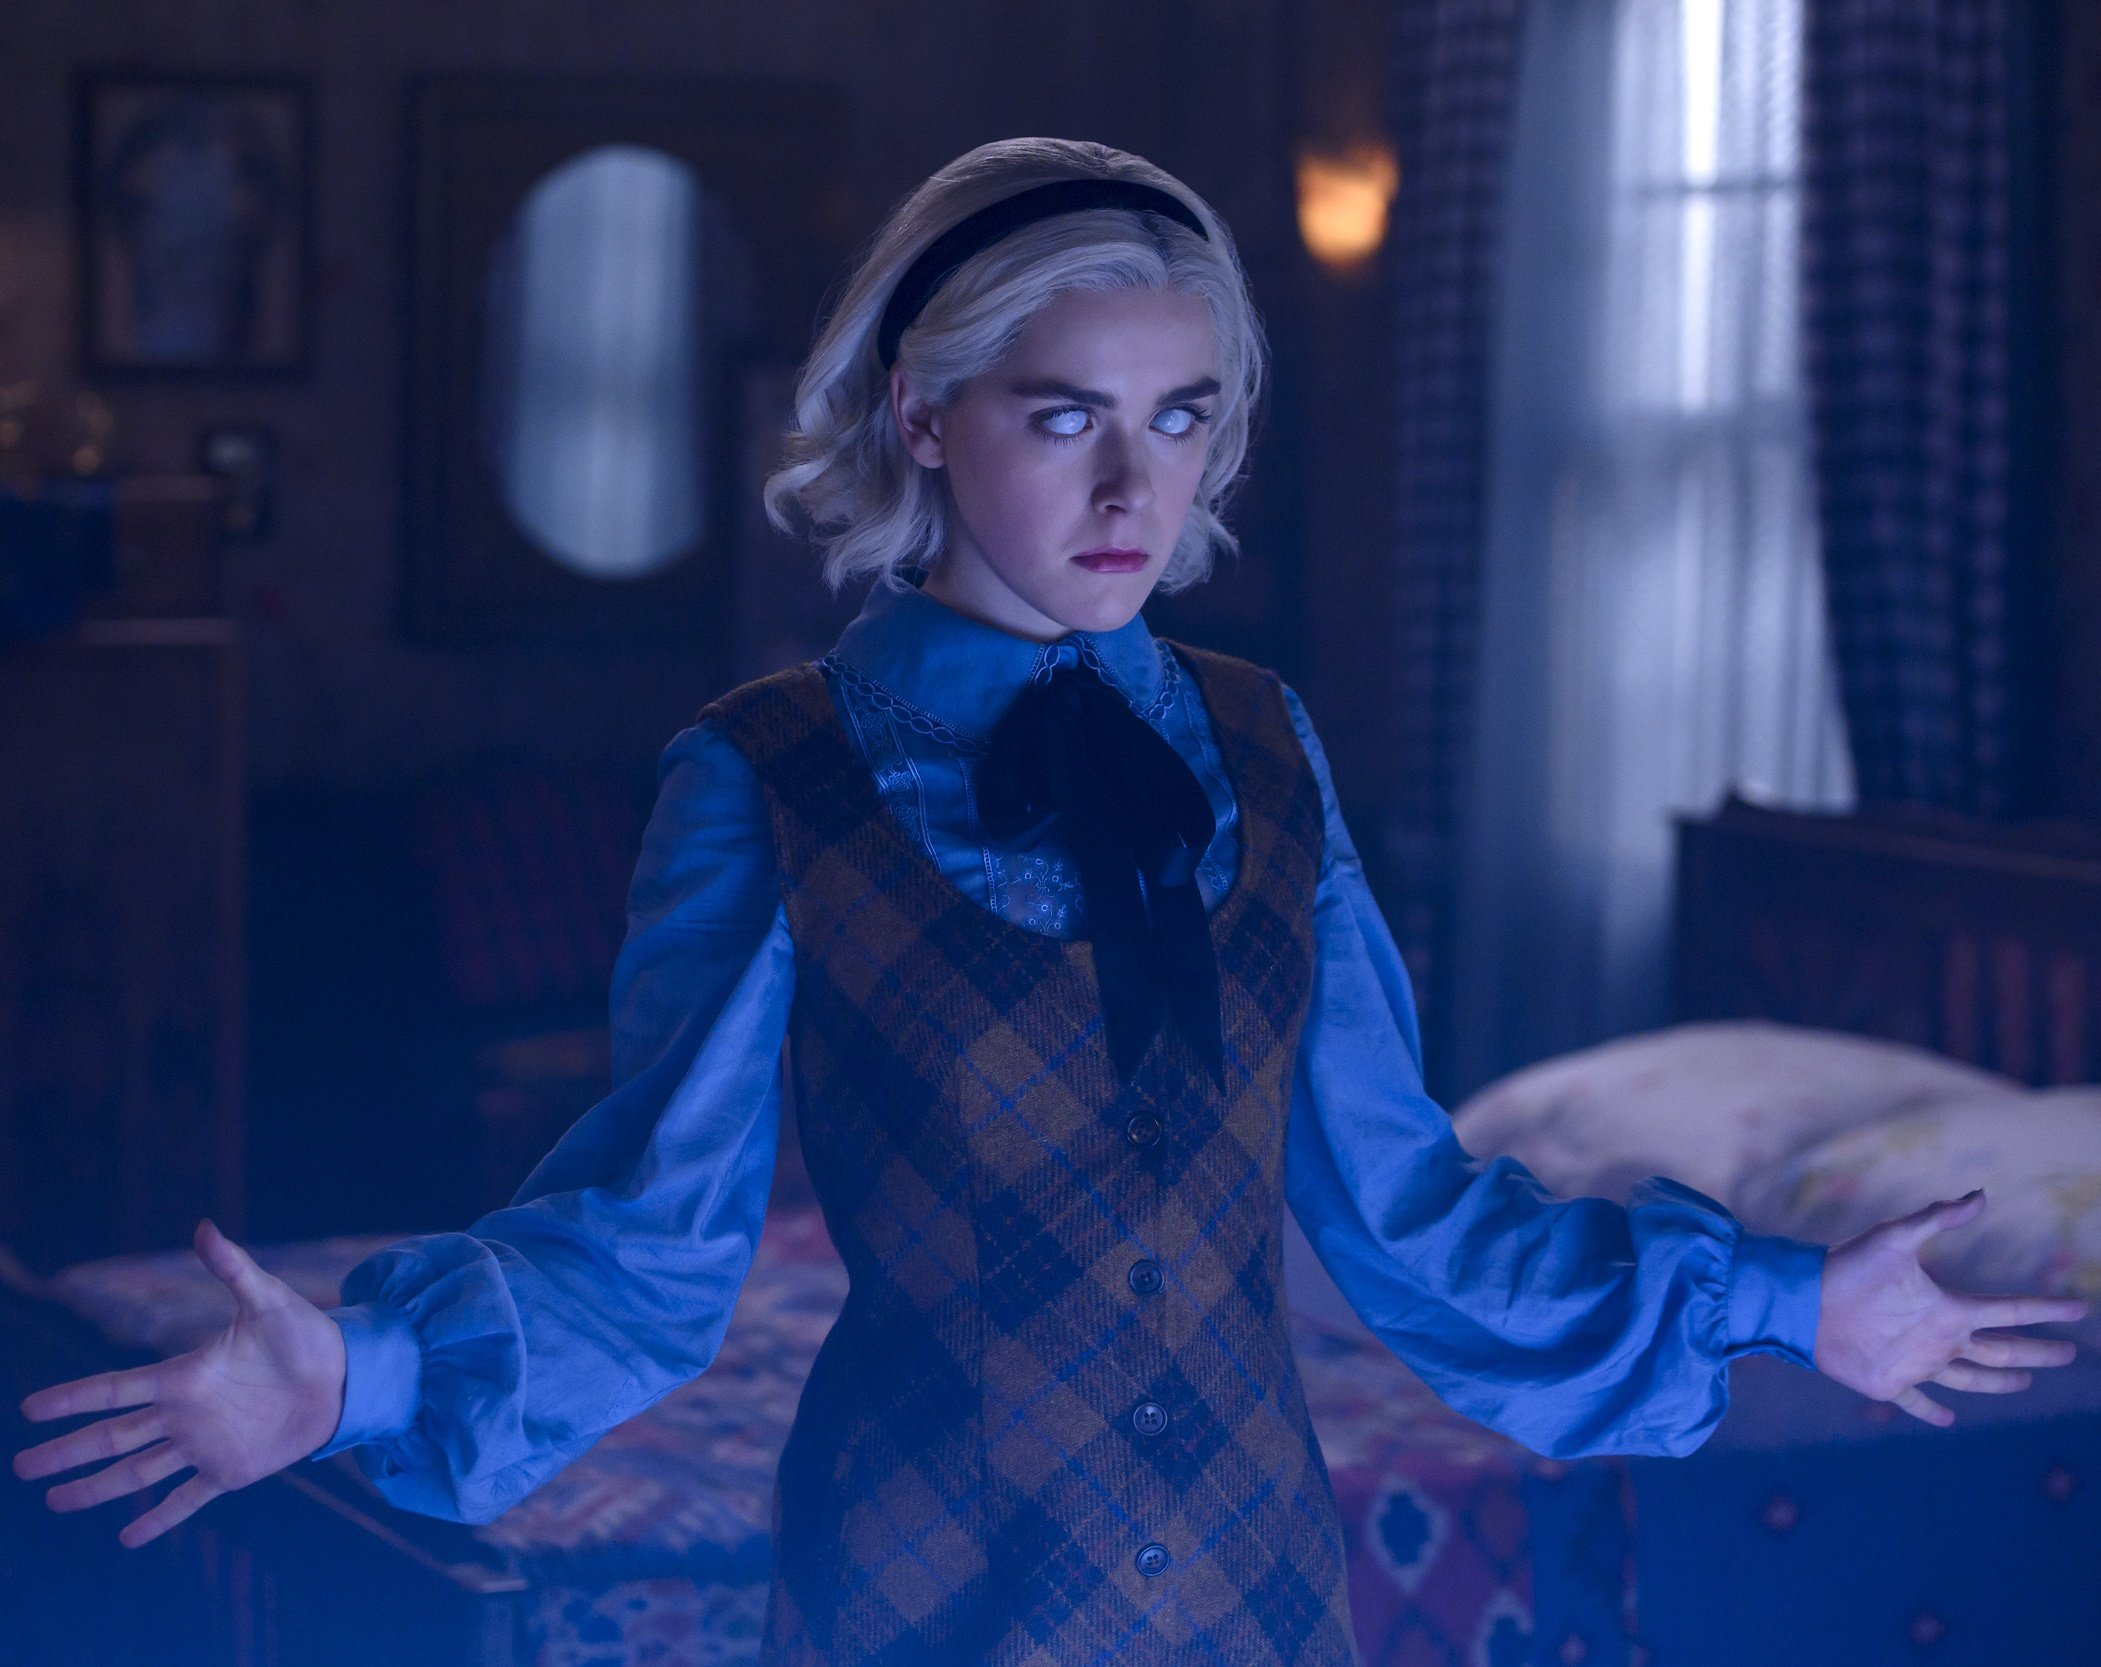 190405 chilling adventures of sabrina 1 ew 656p 992e35161f497d7b4a5ead2476de0d95 20 Things You Missed In The Chilling Adventures Of Sabrina